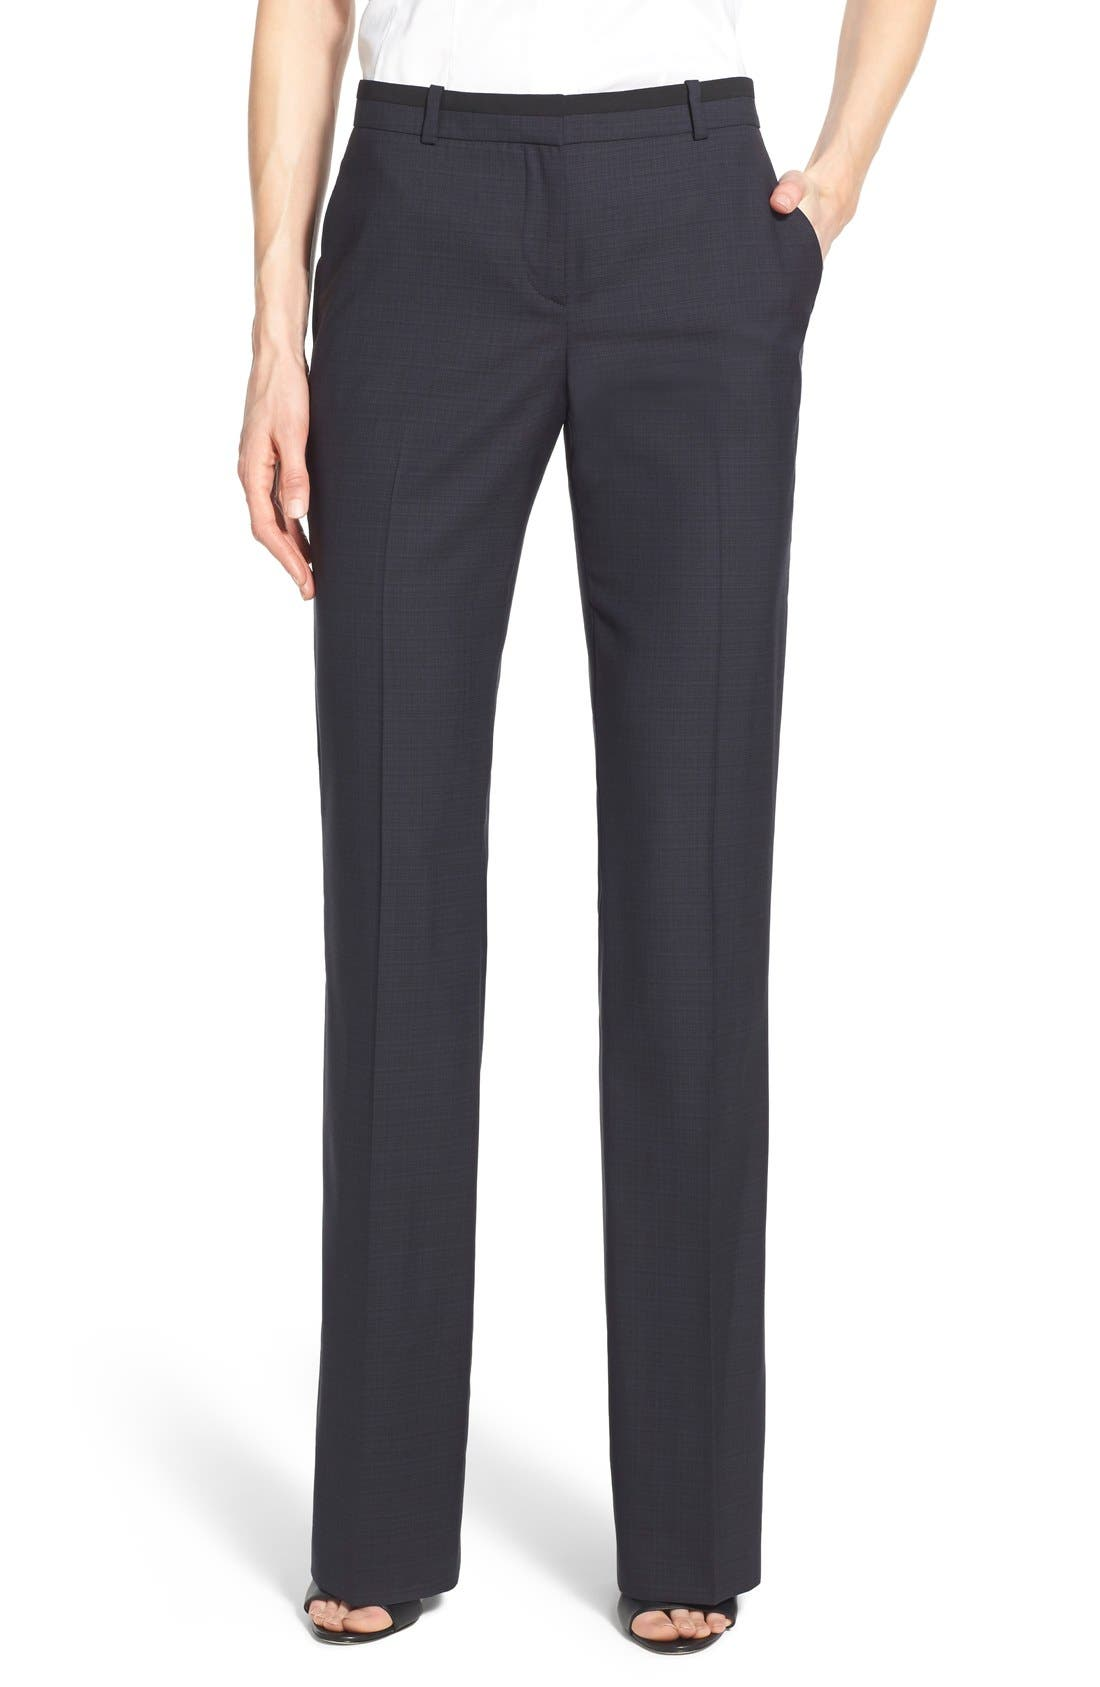 Alternate Image 1 Selected - BOSS 'Tulea' Plaid Stretch Wool Trousers